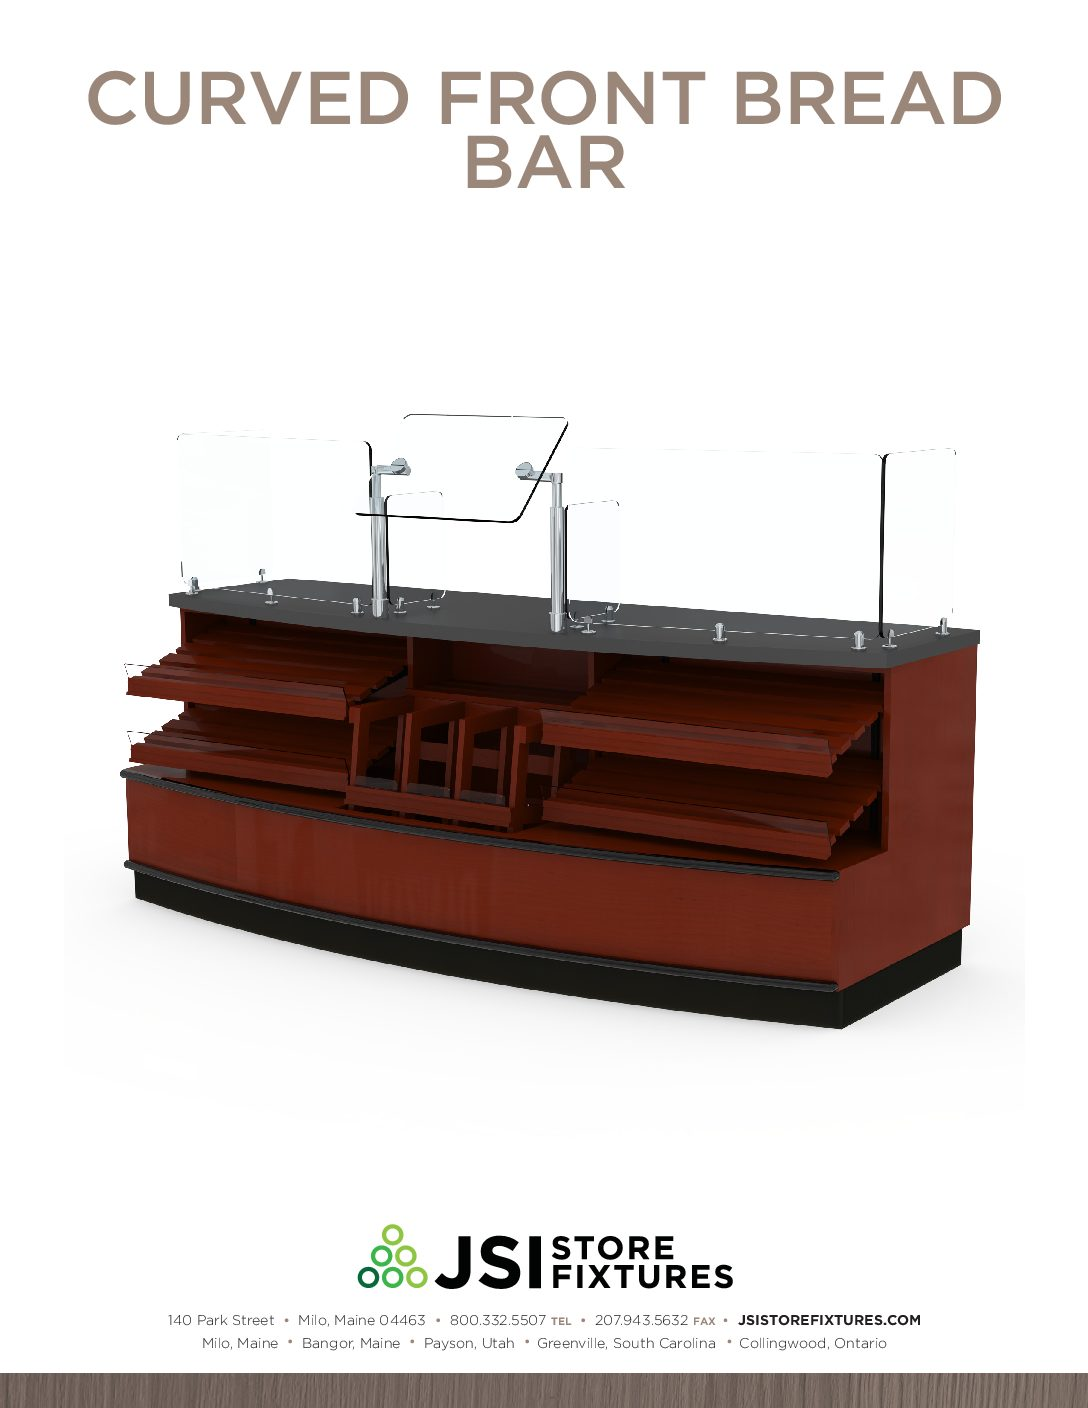 Curved Front Bread Bar Spec Sheet